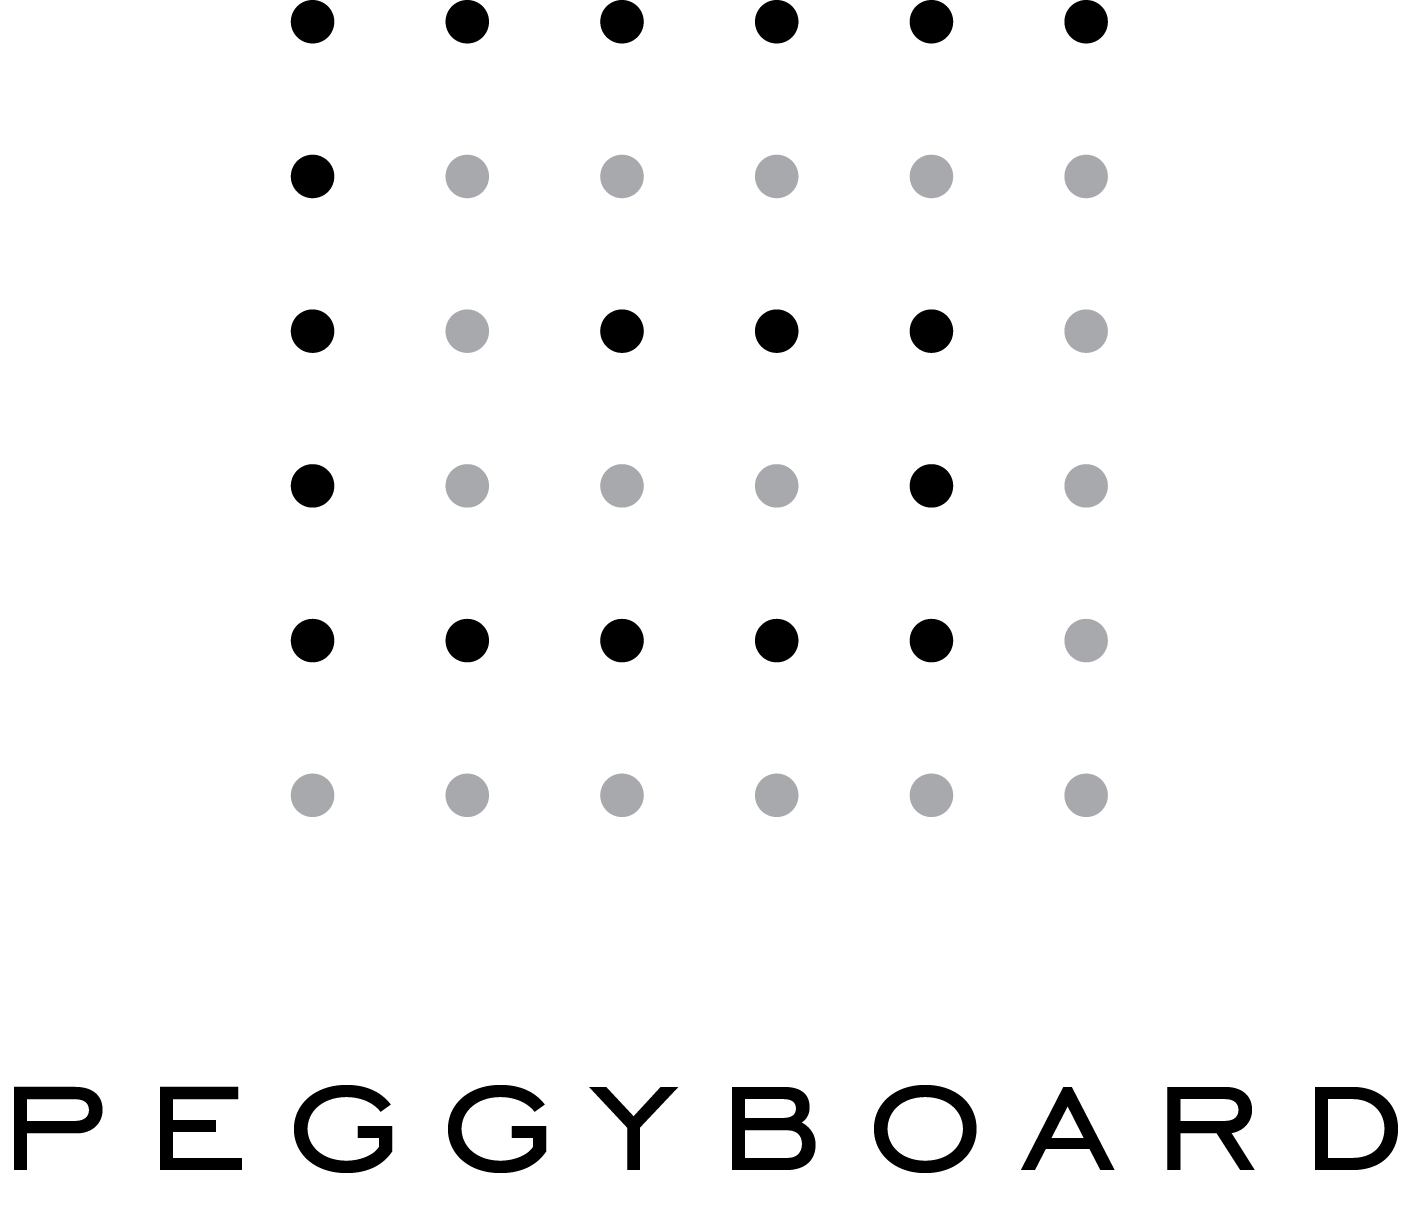 PeggyBoard